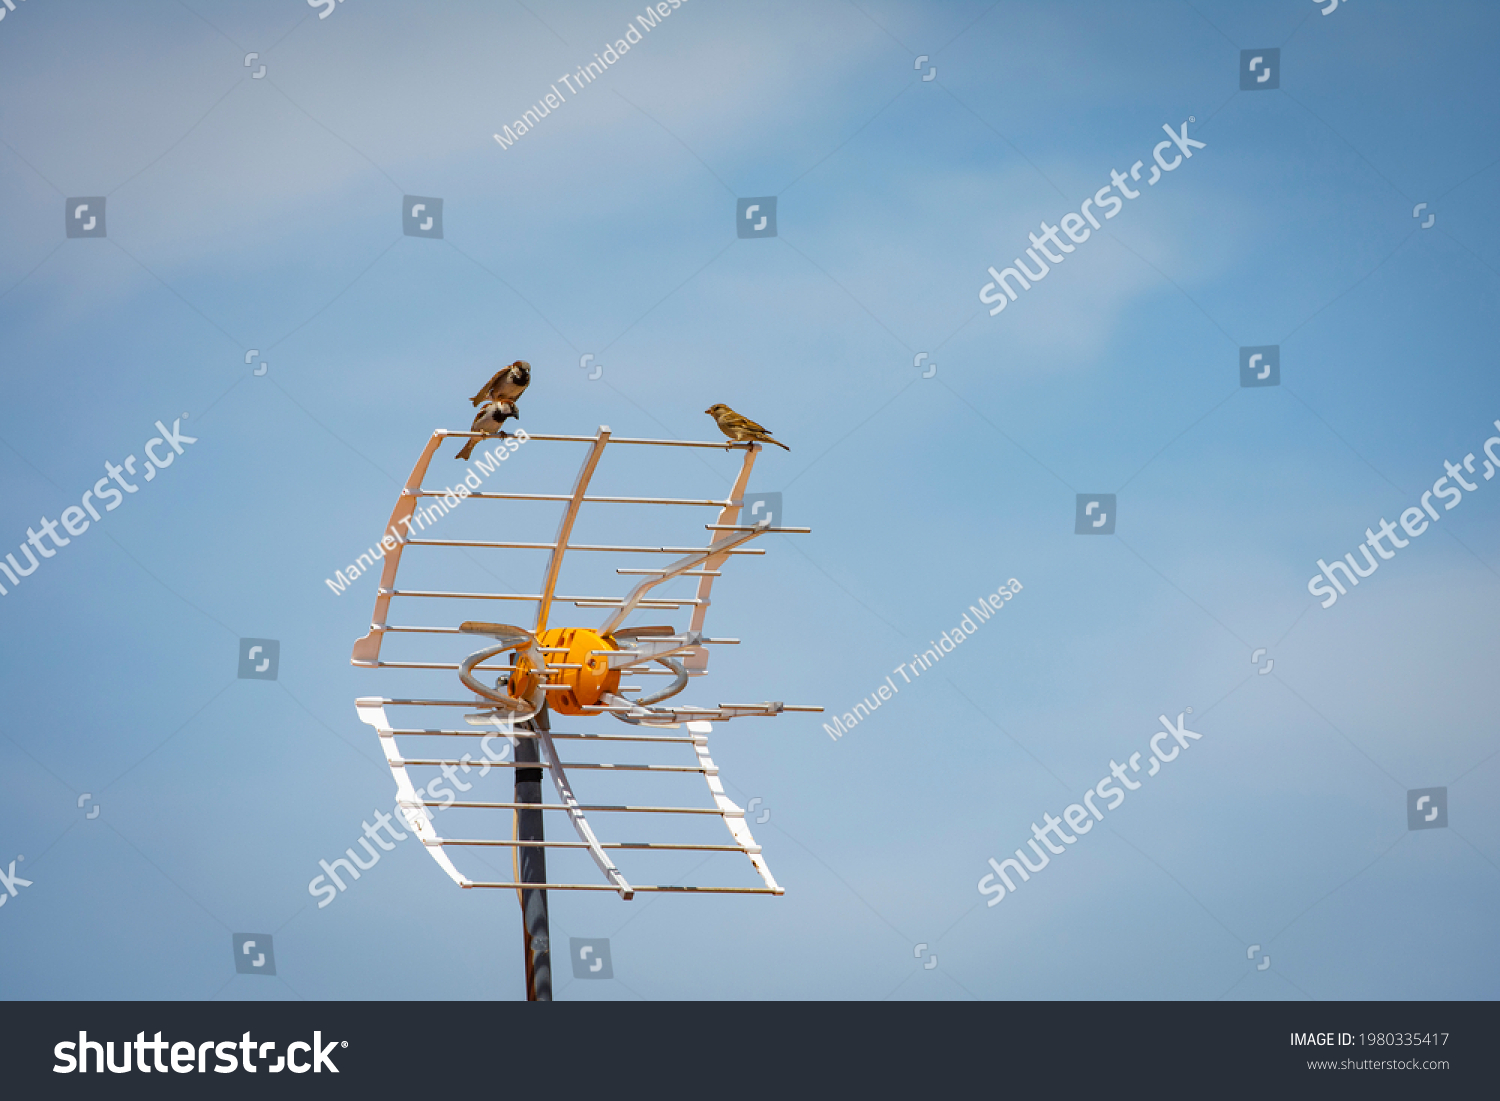 stock-photo-two-male-sparrows-fight-over